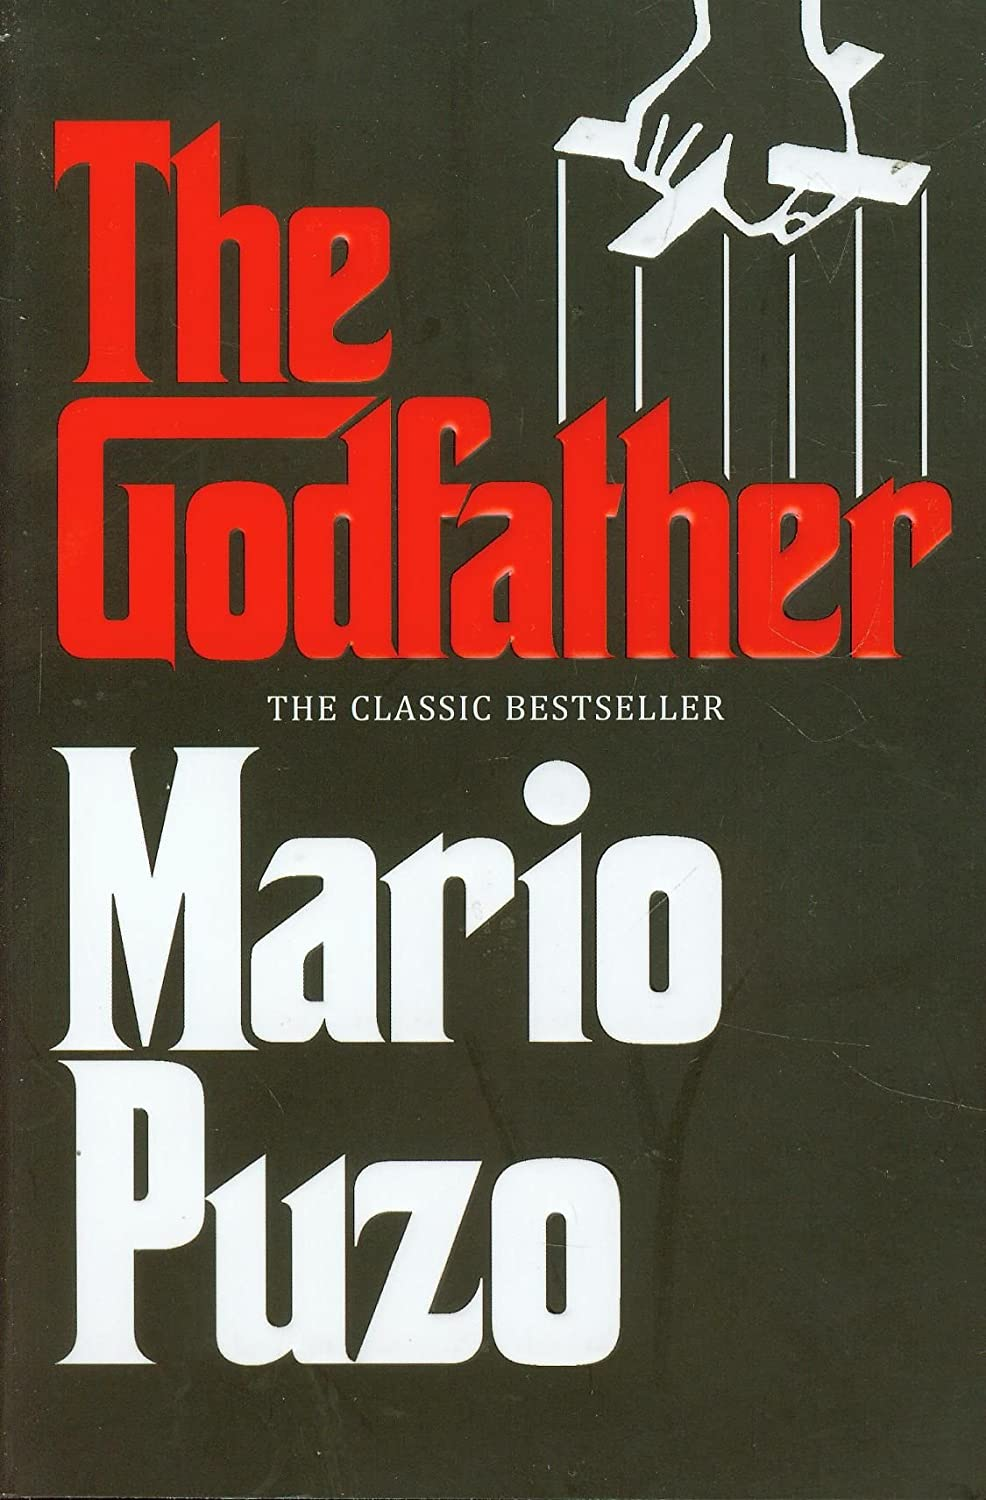 The Godfather by Mario Puzo – Review